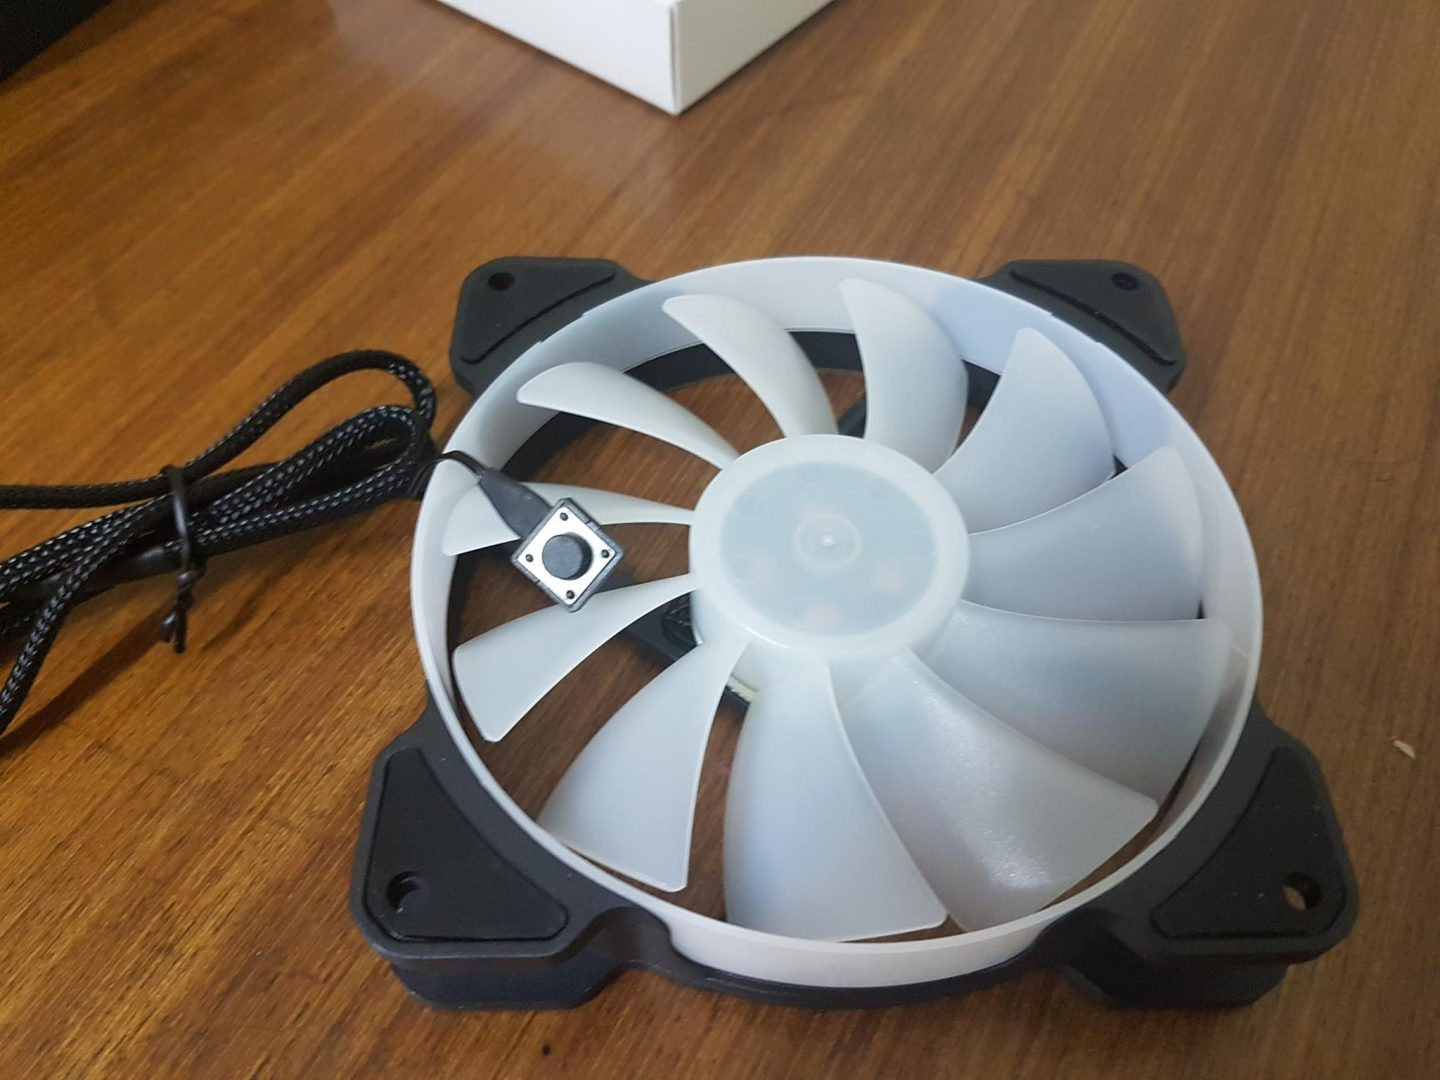 With Color Switch Button Quiet Case Fan PWM 400-1500RPM Reeven Kiran 120mm RGB LED Fan